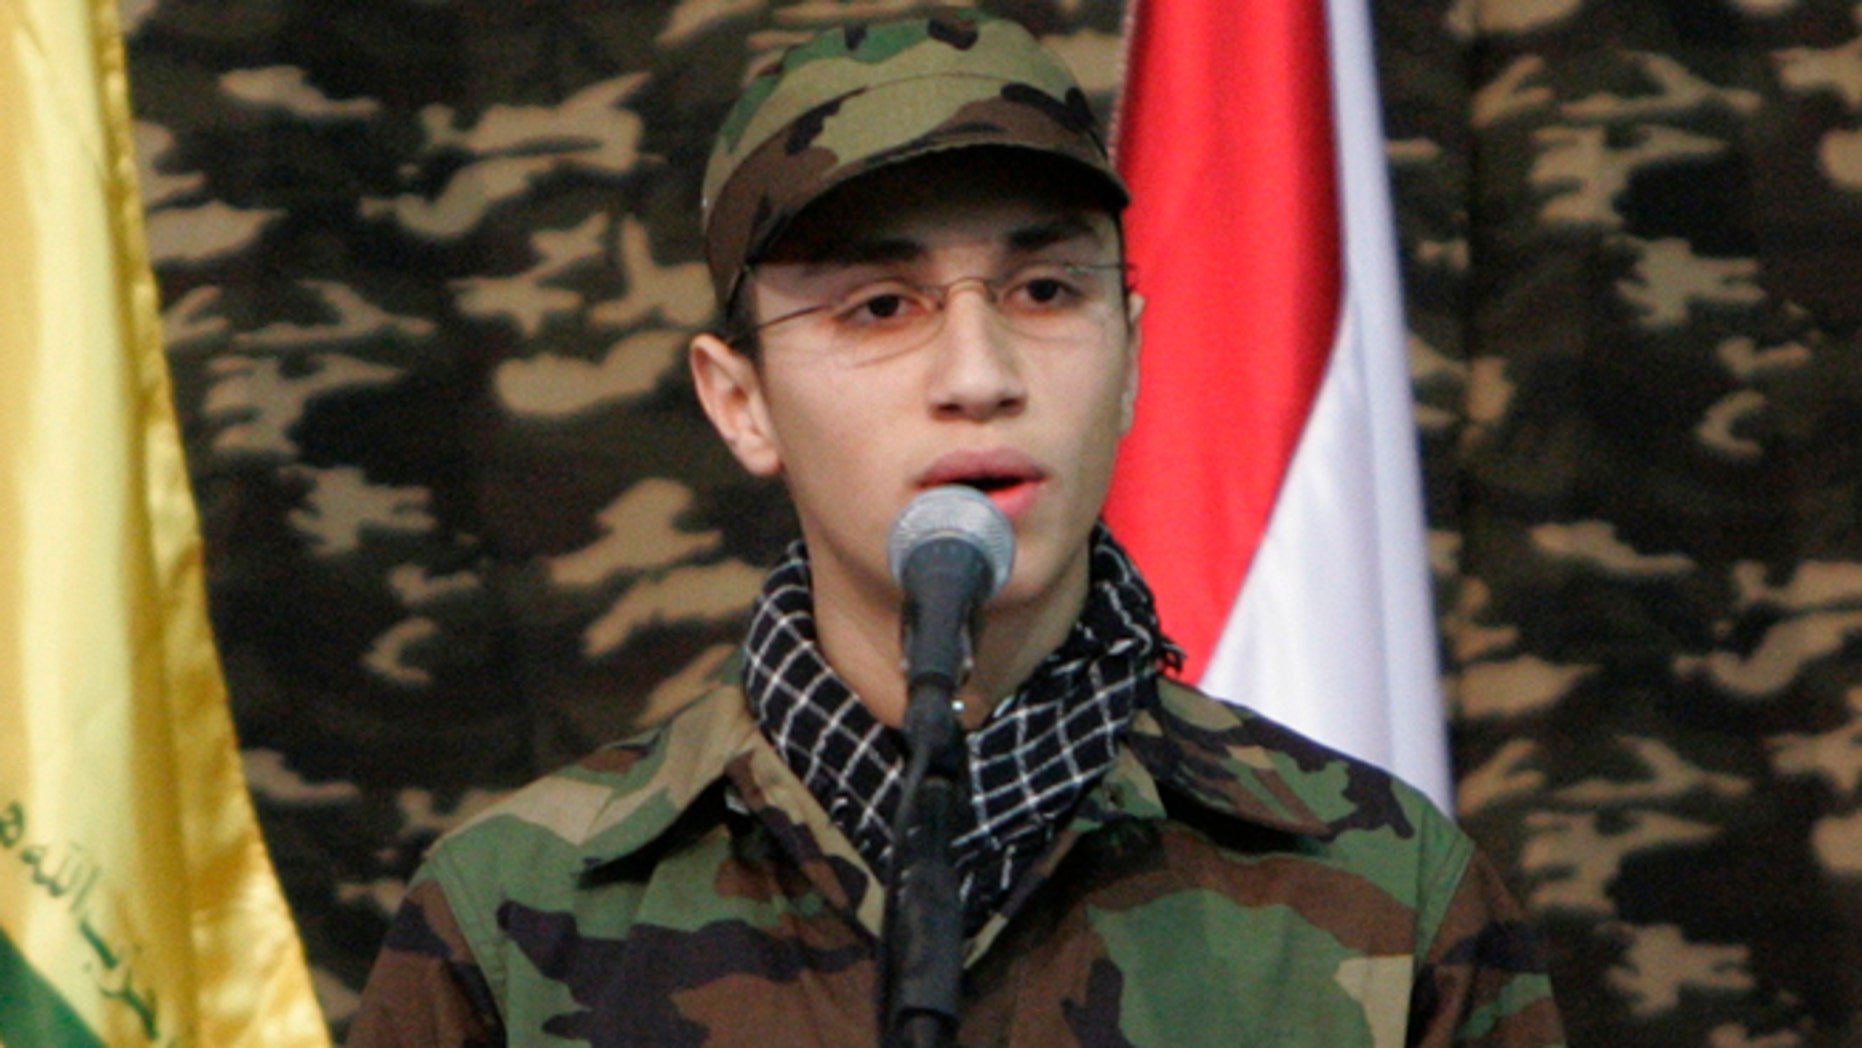 Feb. 22, 2008: Jihad Mughniyeh, the son of slain top Hezbollah commander Imad Mughniyeh, speaks during a rally to commemorate his father and two other leaders Abbas Musawi and Ragheb Harb, in the Shiite suburb of Beirut, Lebanon. A Hezbollah official said Sunday, Jan. 18, 2015, that an Israeli strike in the Syrian Golan Heights killed Jihad Mughniyeh and four other fighters from the Lebanese Shiite militant group.